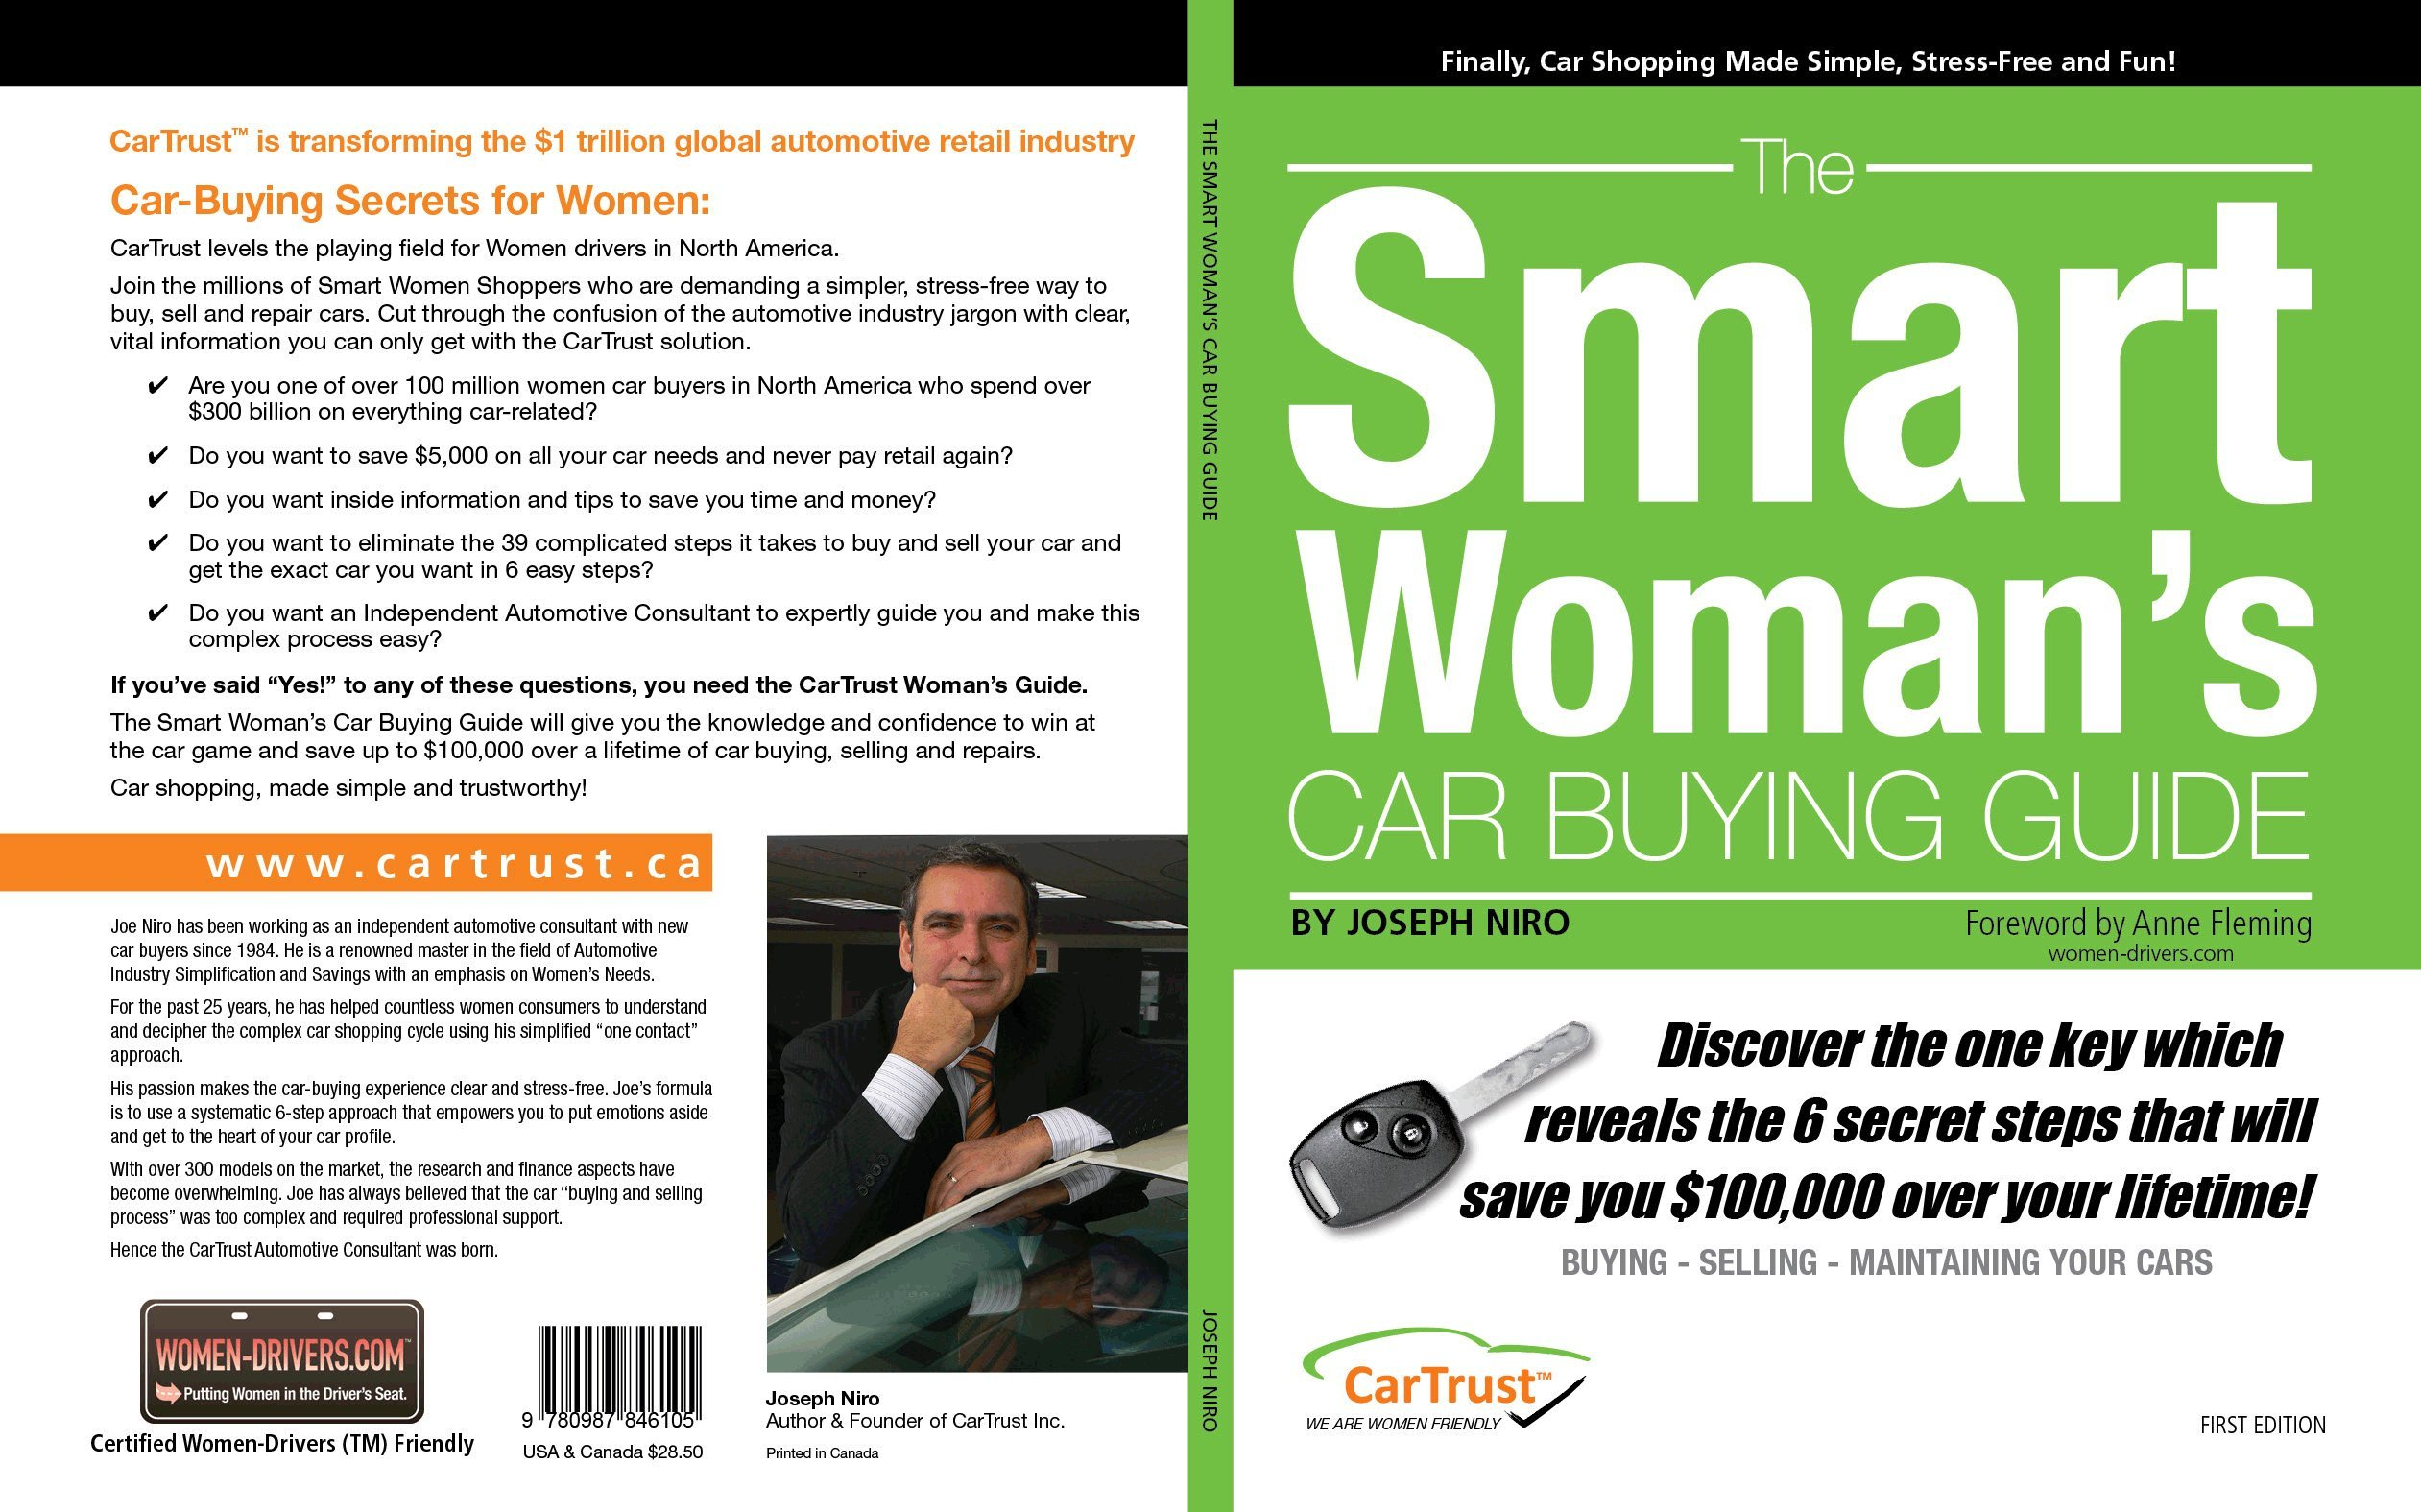 Where Are the Women in Automotive Retail?